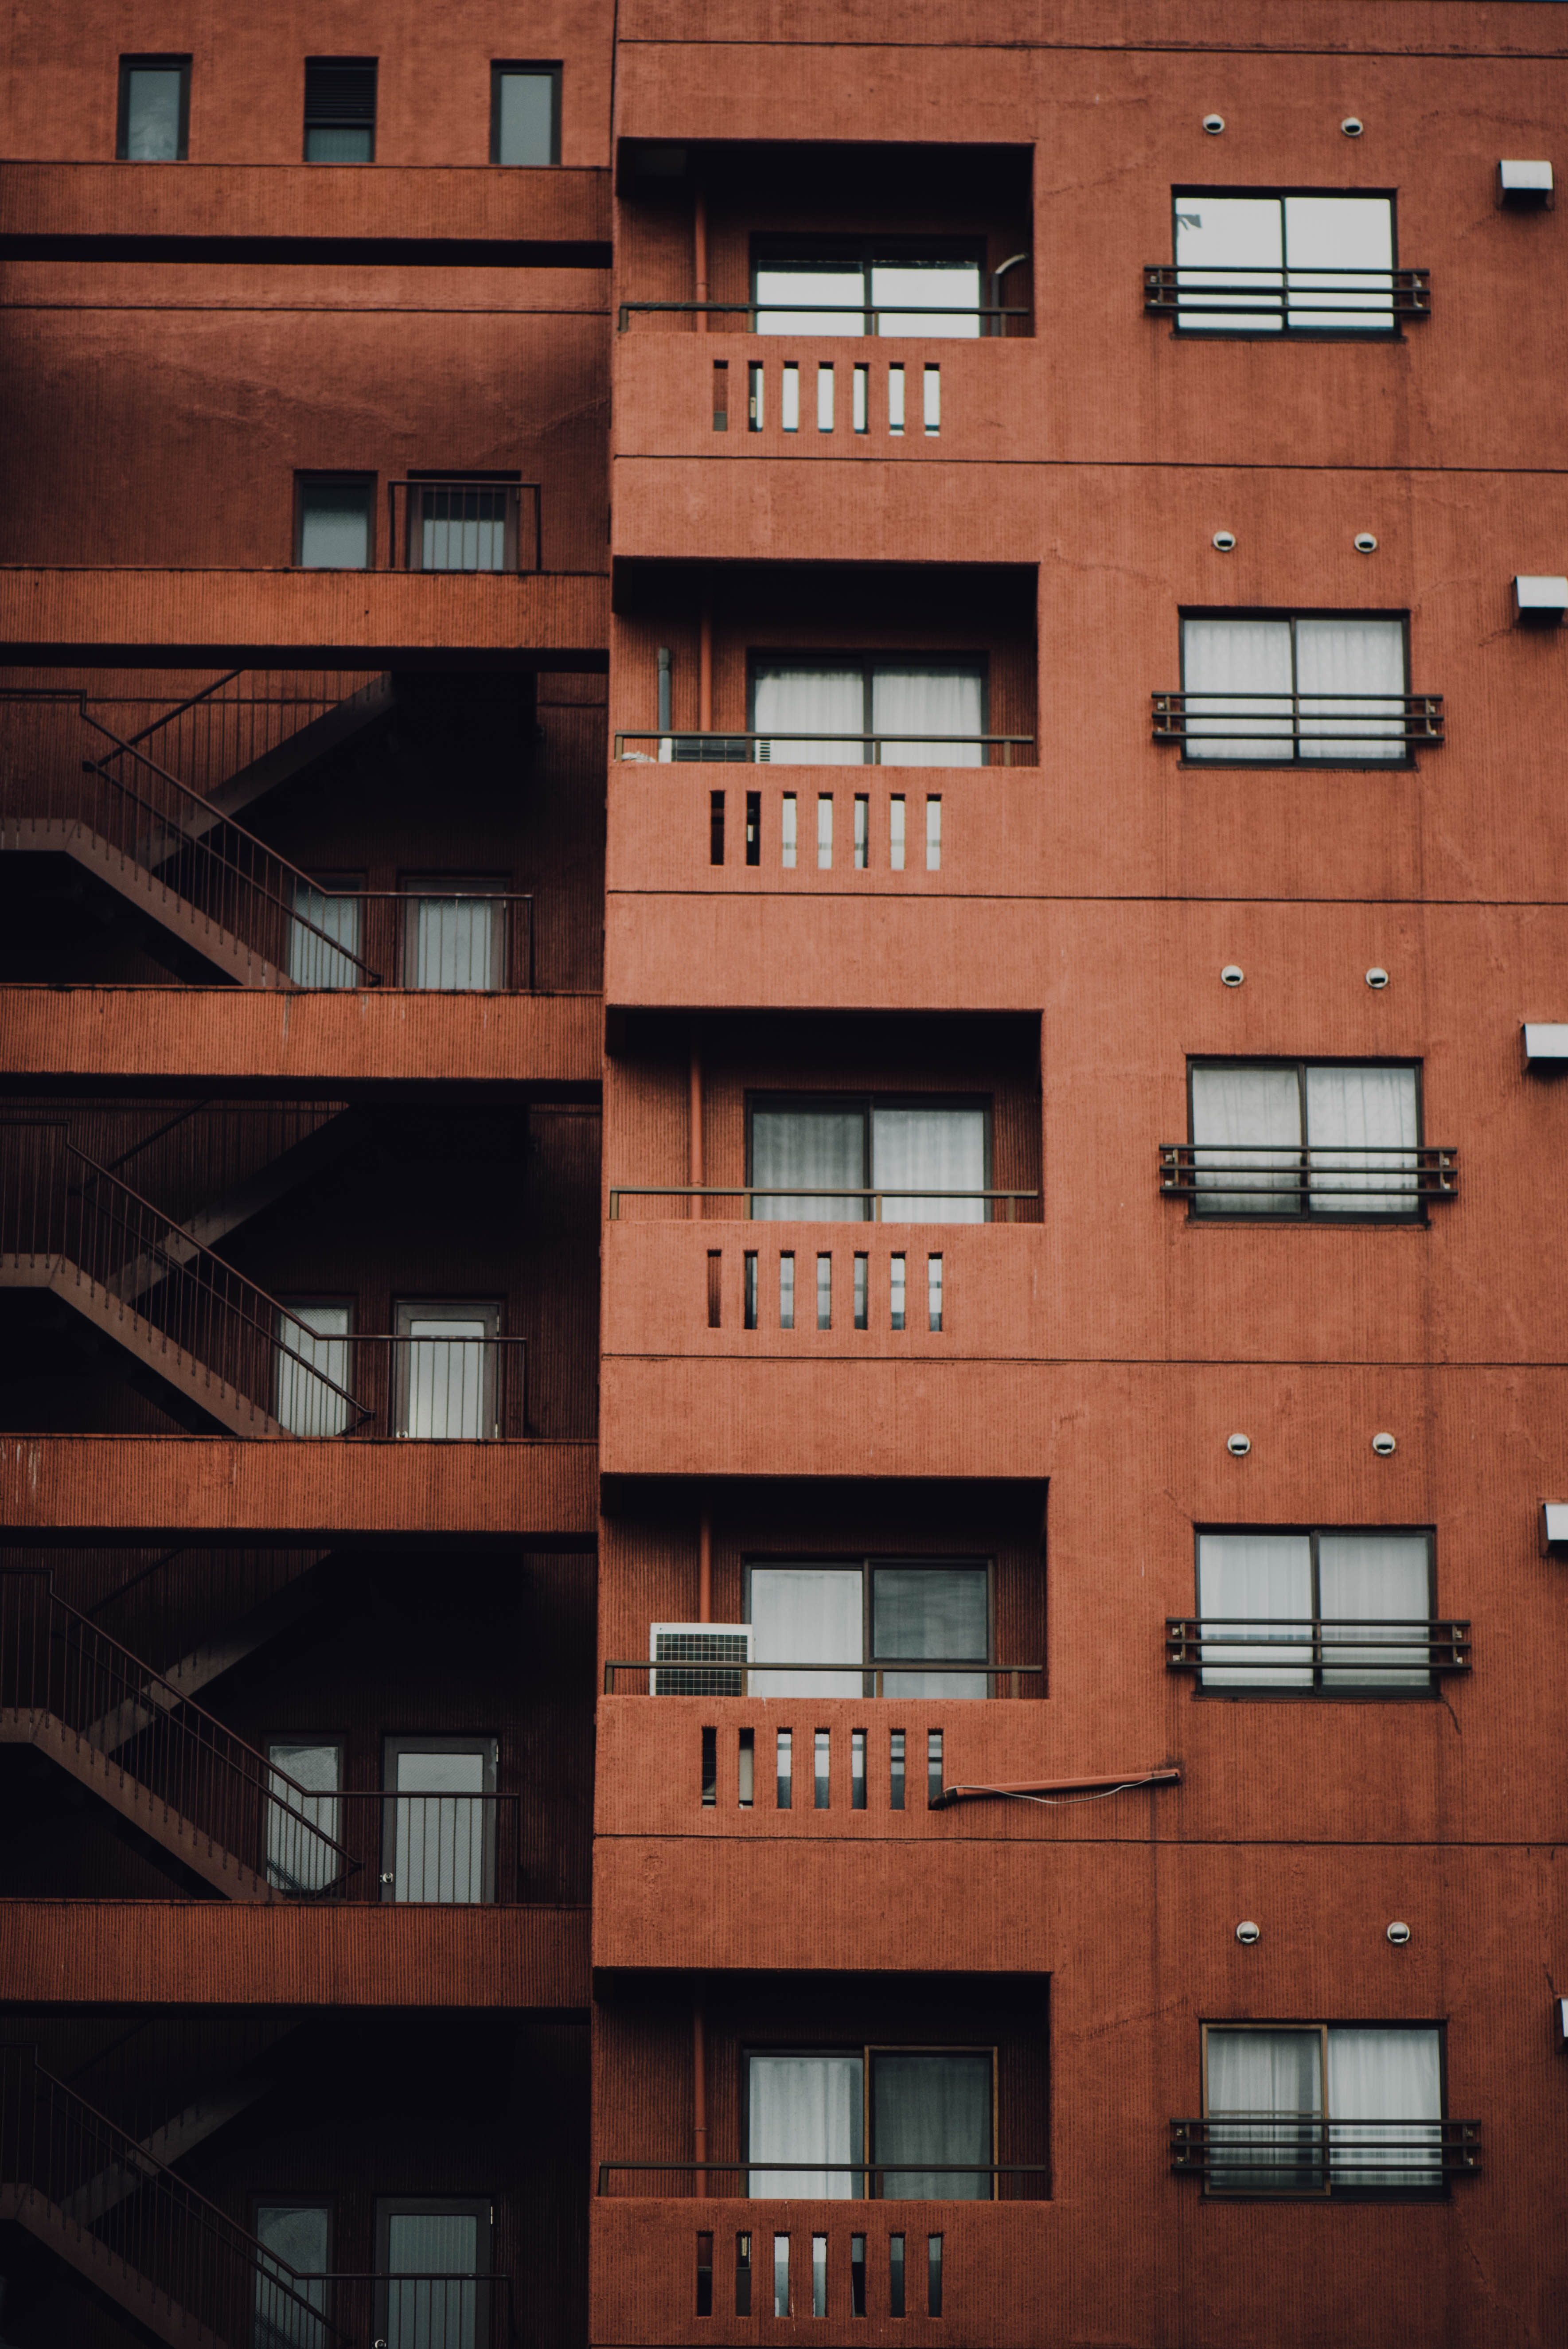 Facade of a brown apartment building consists of the stairwells, balconies, and windows.